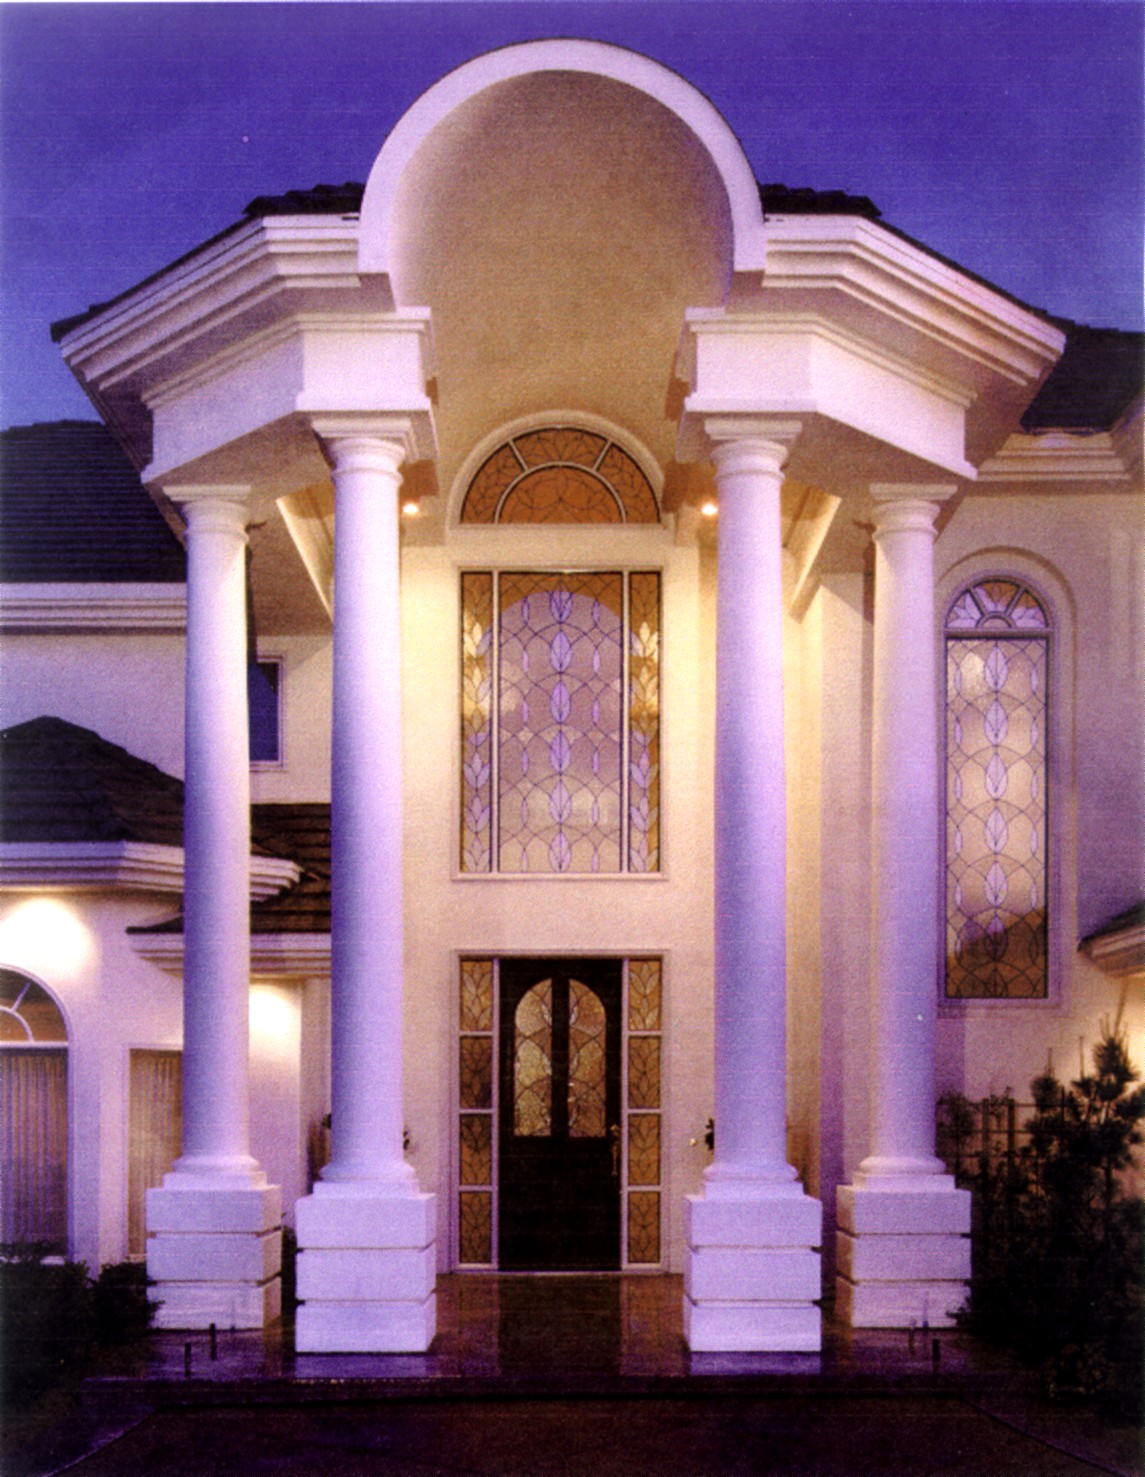 House With Columns